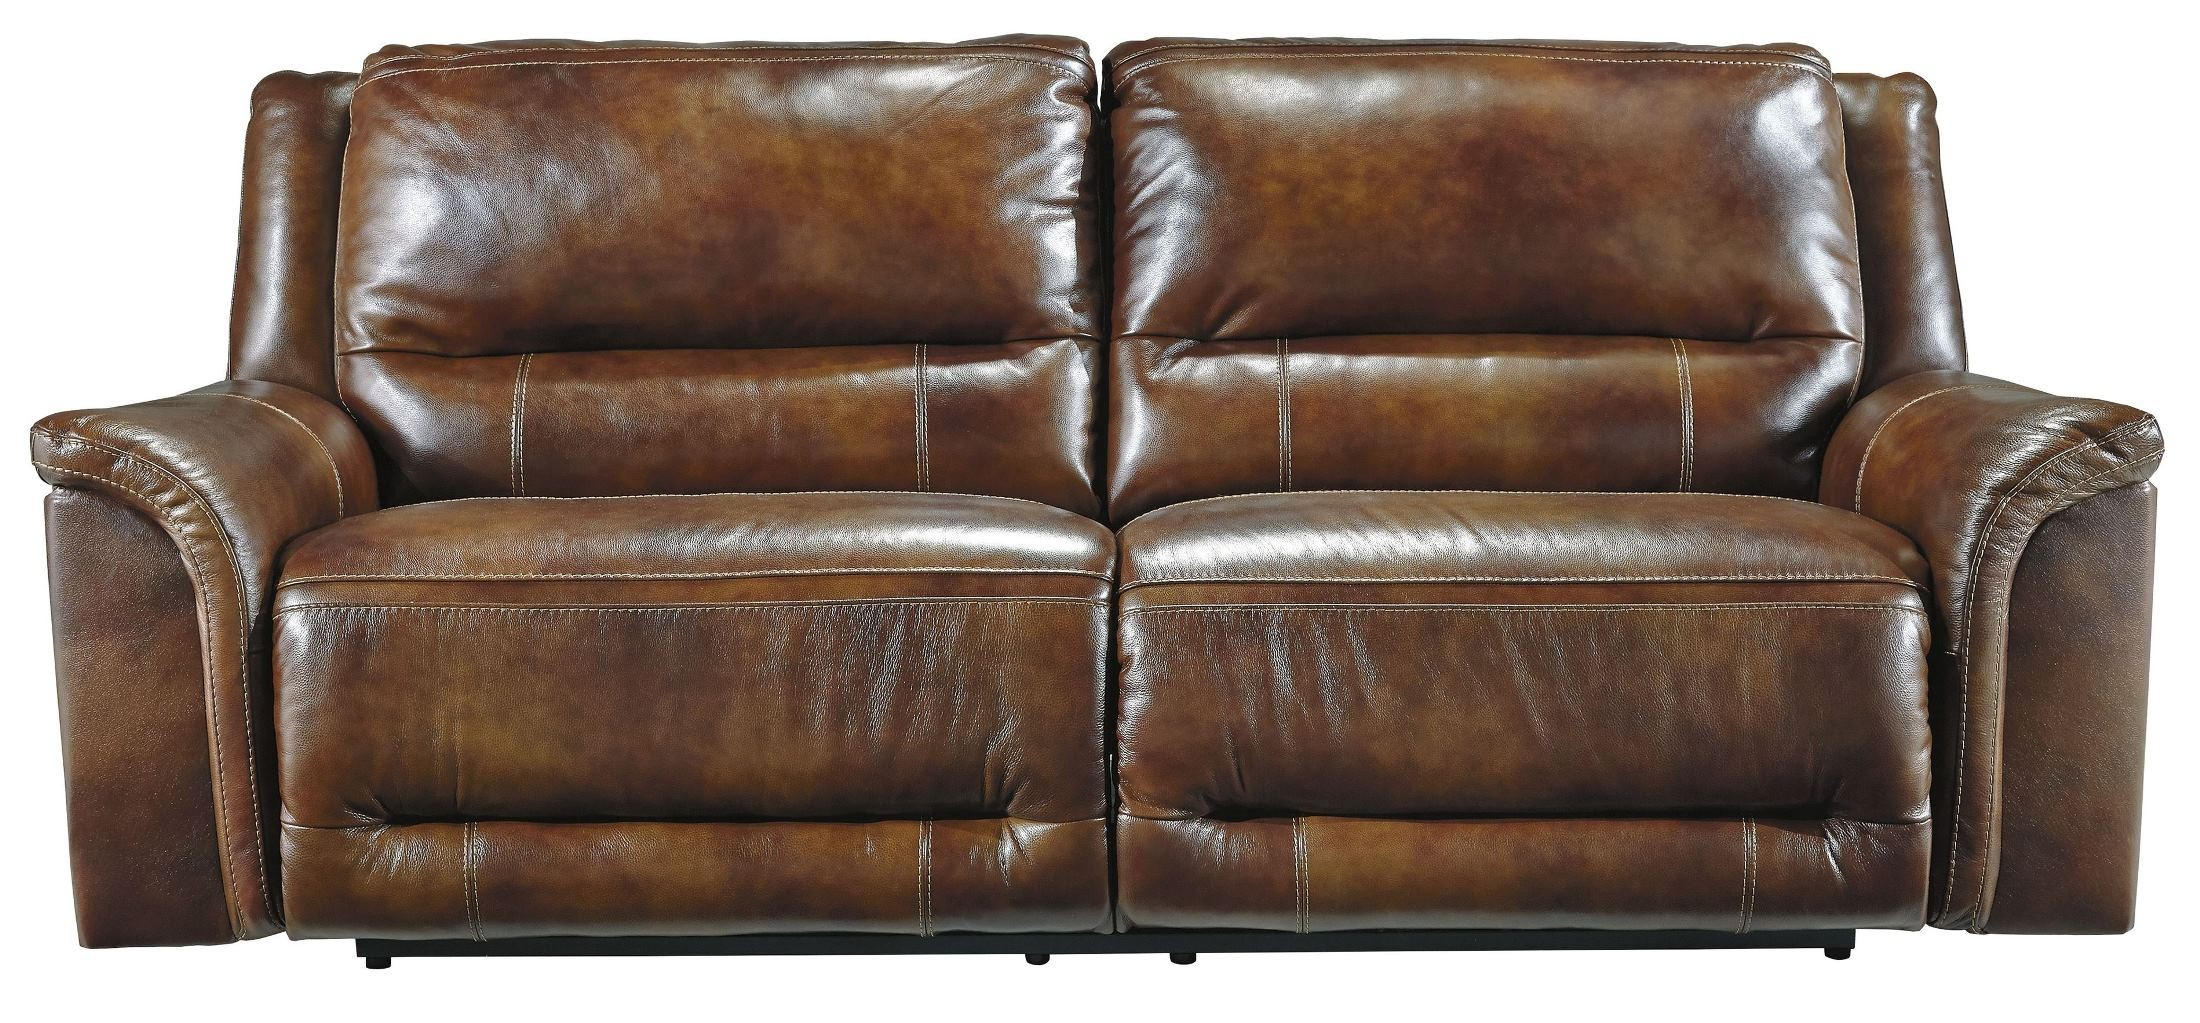 Jayron Harness 2 Seat Power Reclining Sofa  sc 1 st  Coleman Furniture & Jayron Harness 2 Seat Power Reclining Sofa from Ashley (U7660047 ... islam-shia.org